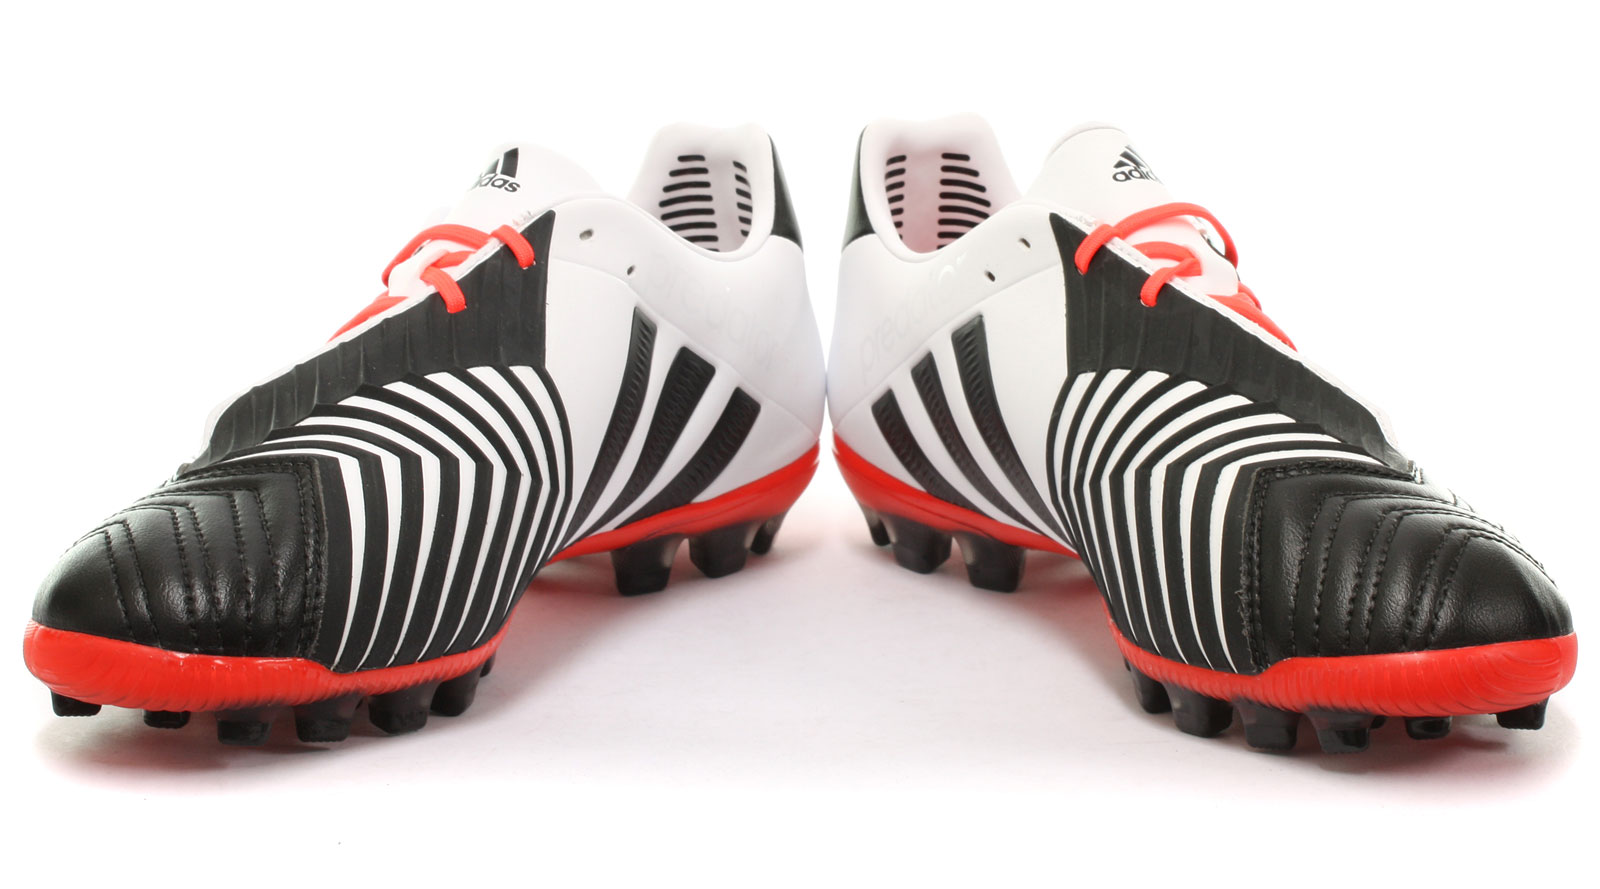 809dcccba1c9 adidas Predator Incurza TRX AG Artificial Ground Mens Rugby Boots ALL SIZES  2 2 sur 6 ...